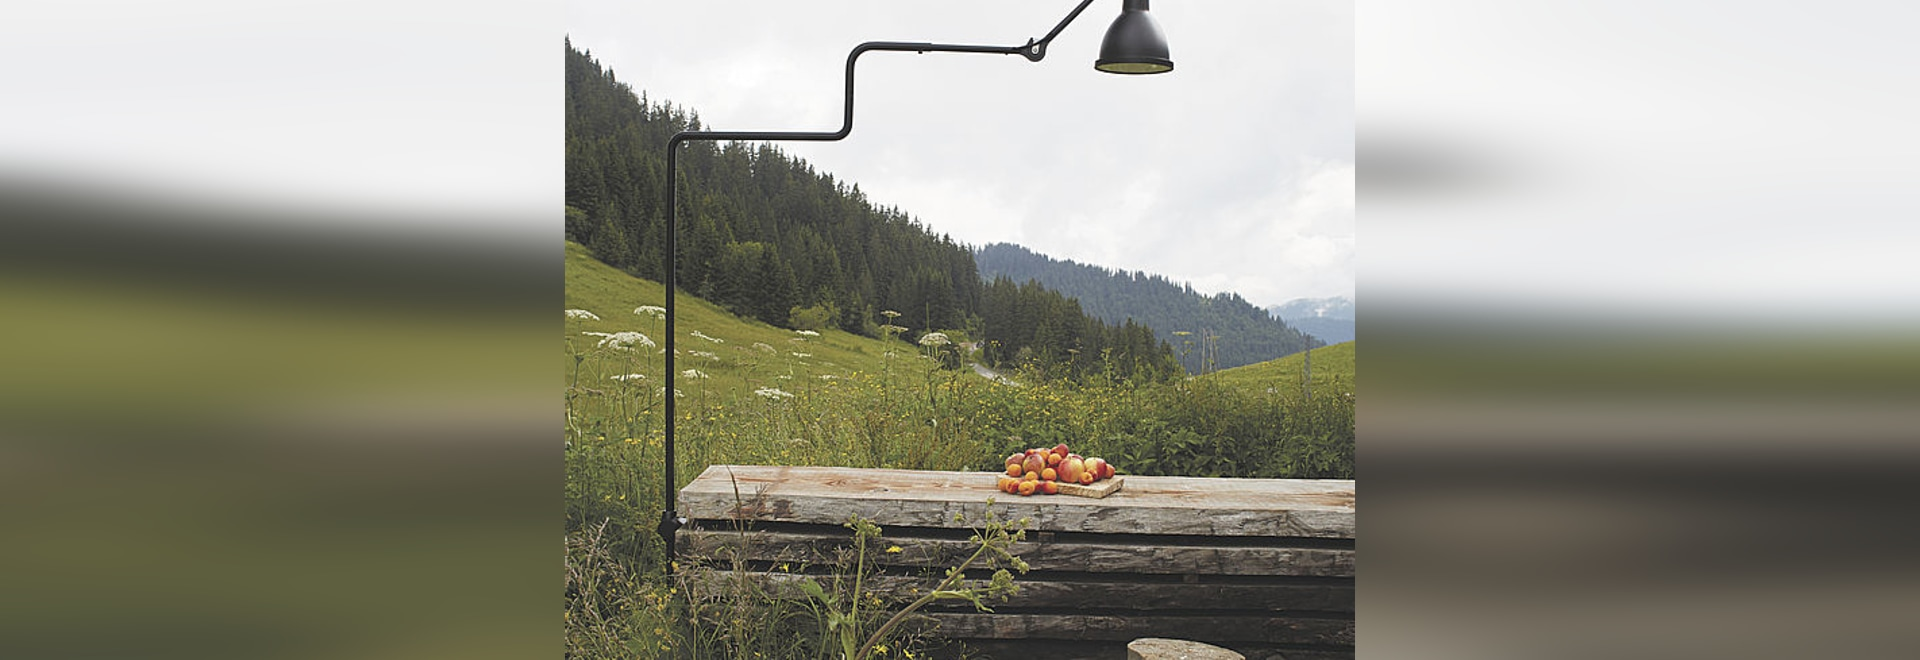 Lampe Gras In The Tube Dcw éditions Launches Xl And Outdoor Versions Of The Lampes Gras